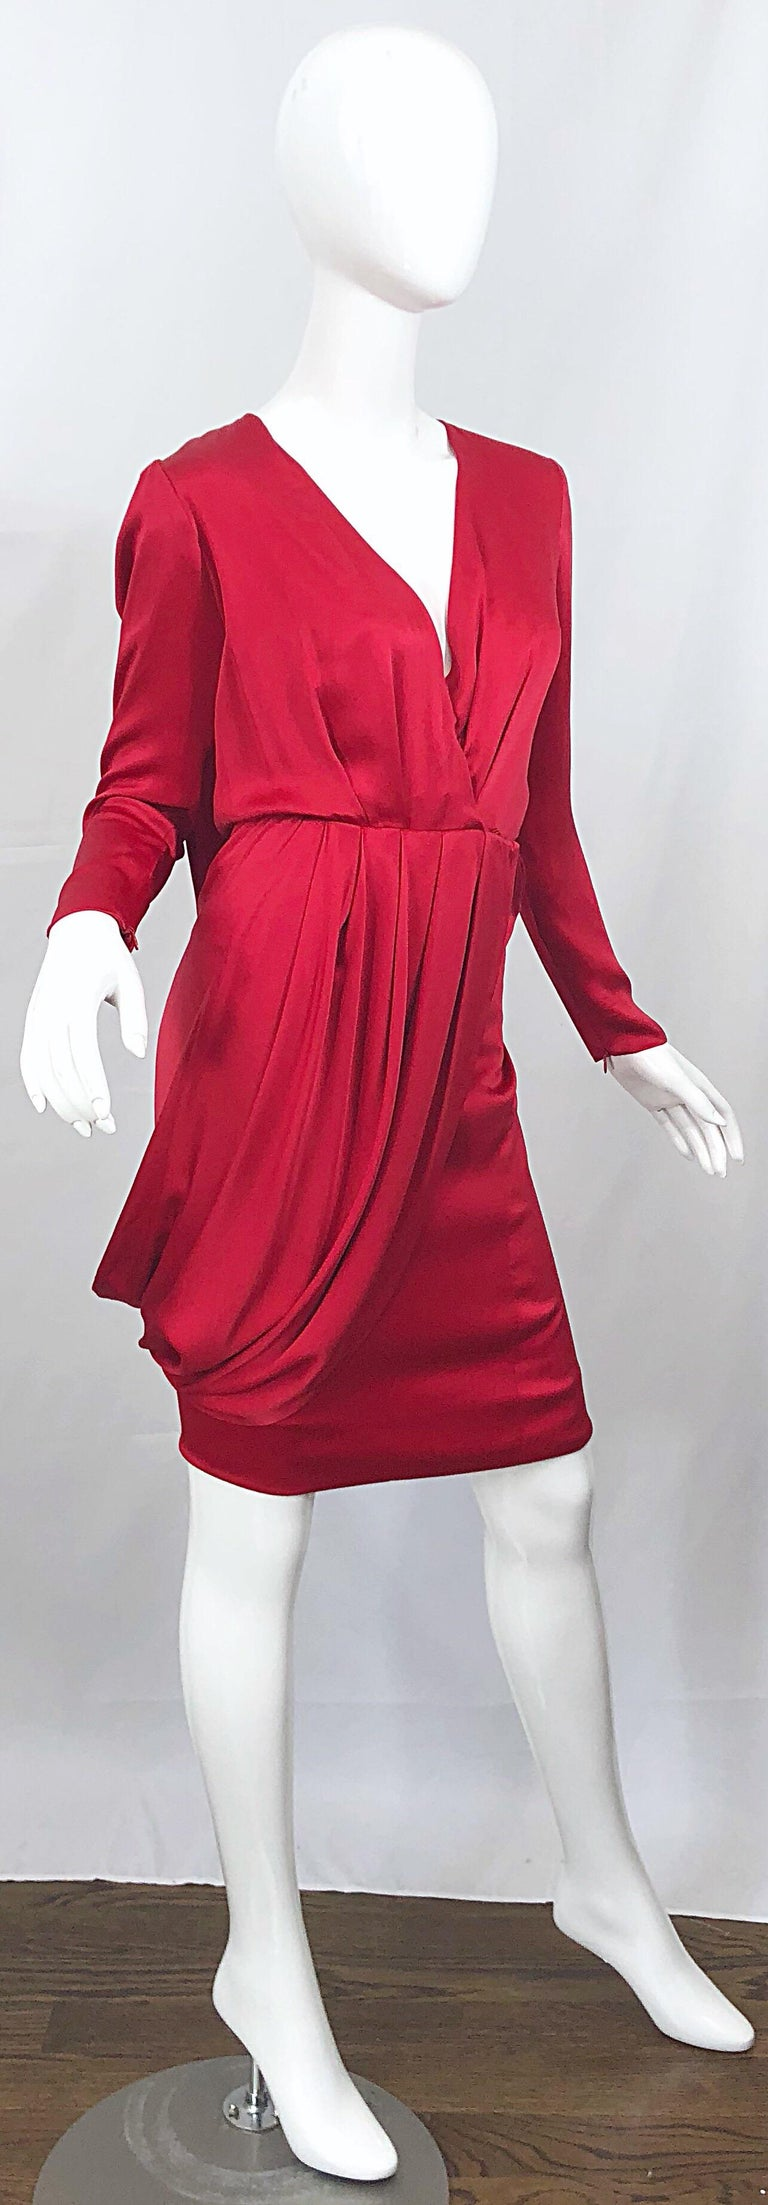 Vintage Givenchy Couture by Alexander McQueen Sz 36 Lipstick Red Silk Cape Dress For Sale 6